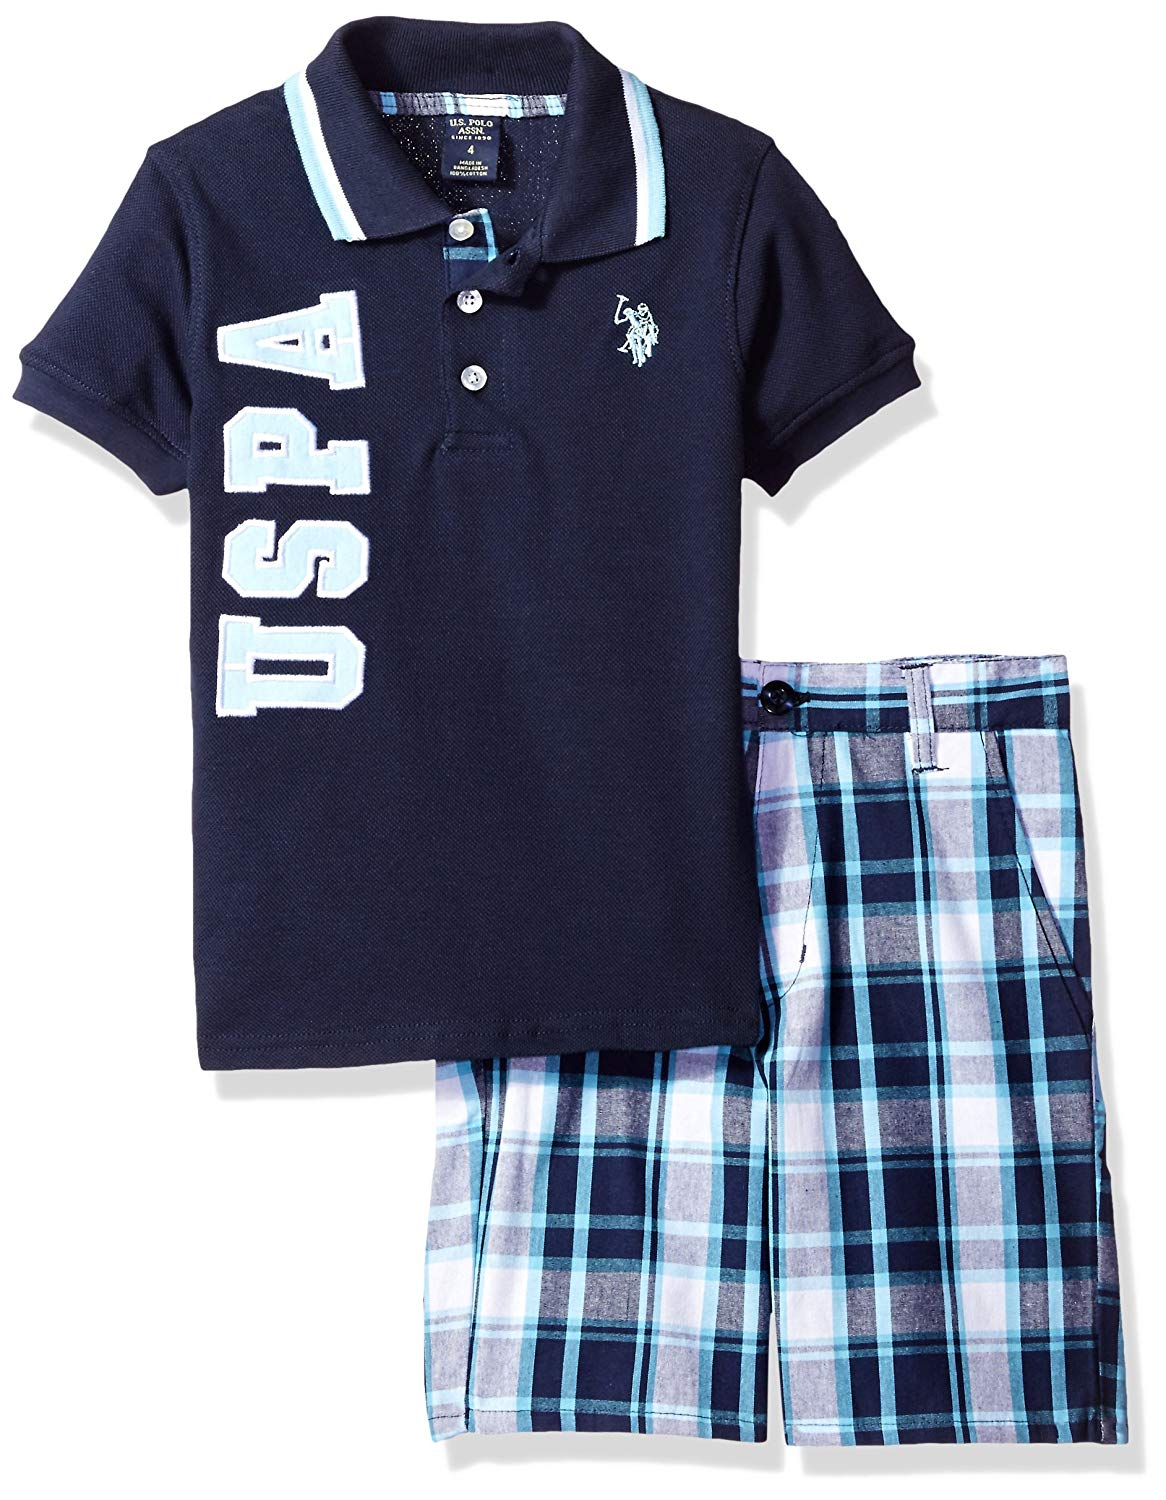 U.S. Polo Assn. Little Boys' Embellished Pique Polo Shirt and Plaid Short